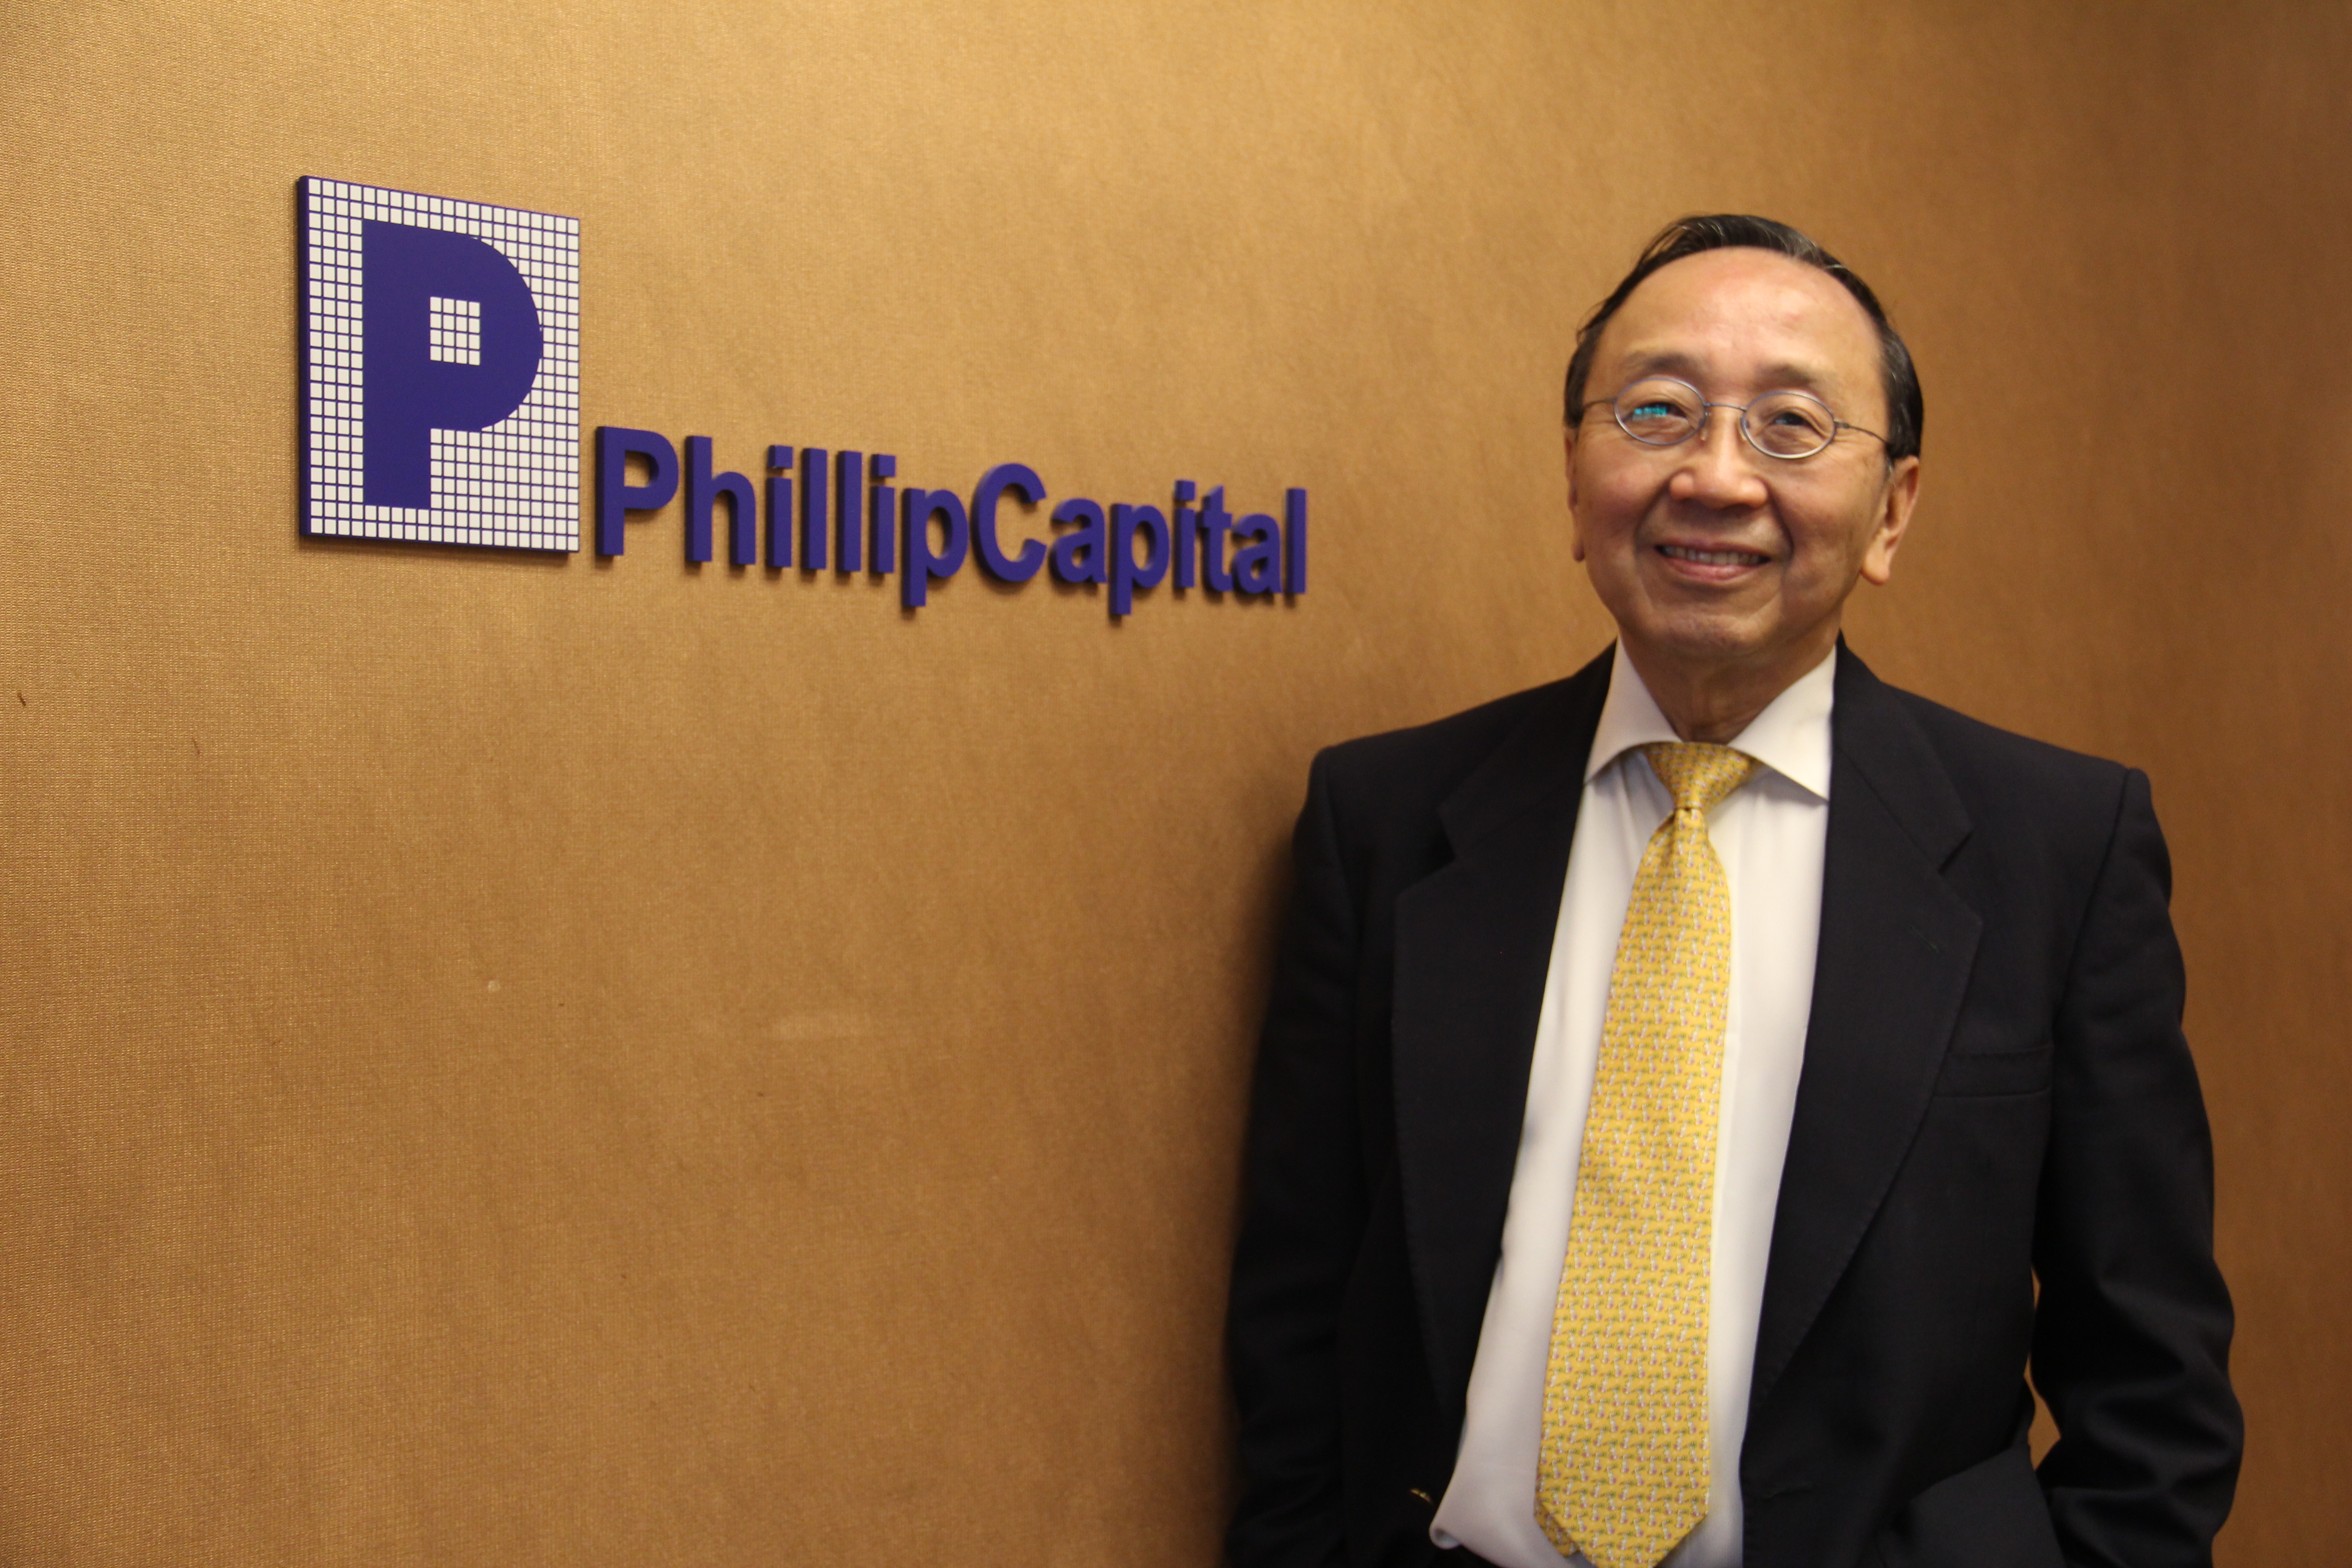 PhillipCapital Chairman Awarded Singapore Businessman of the Year